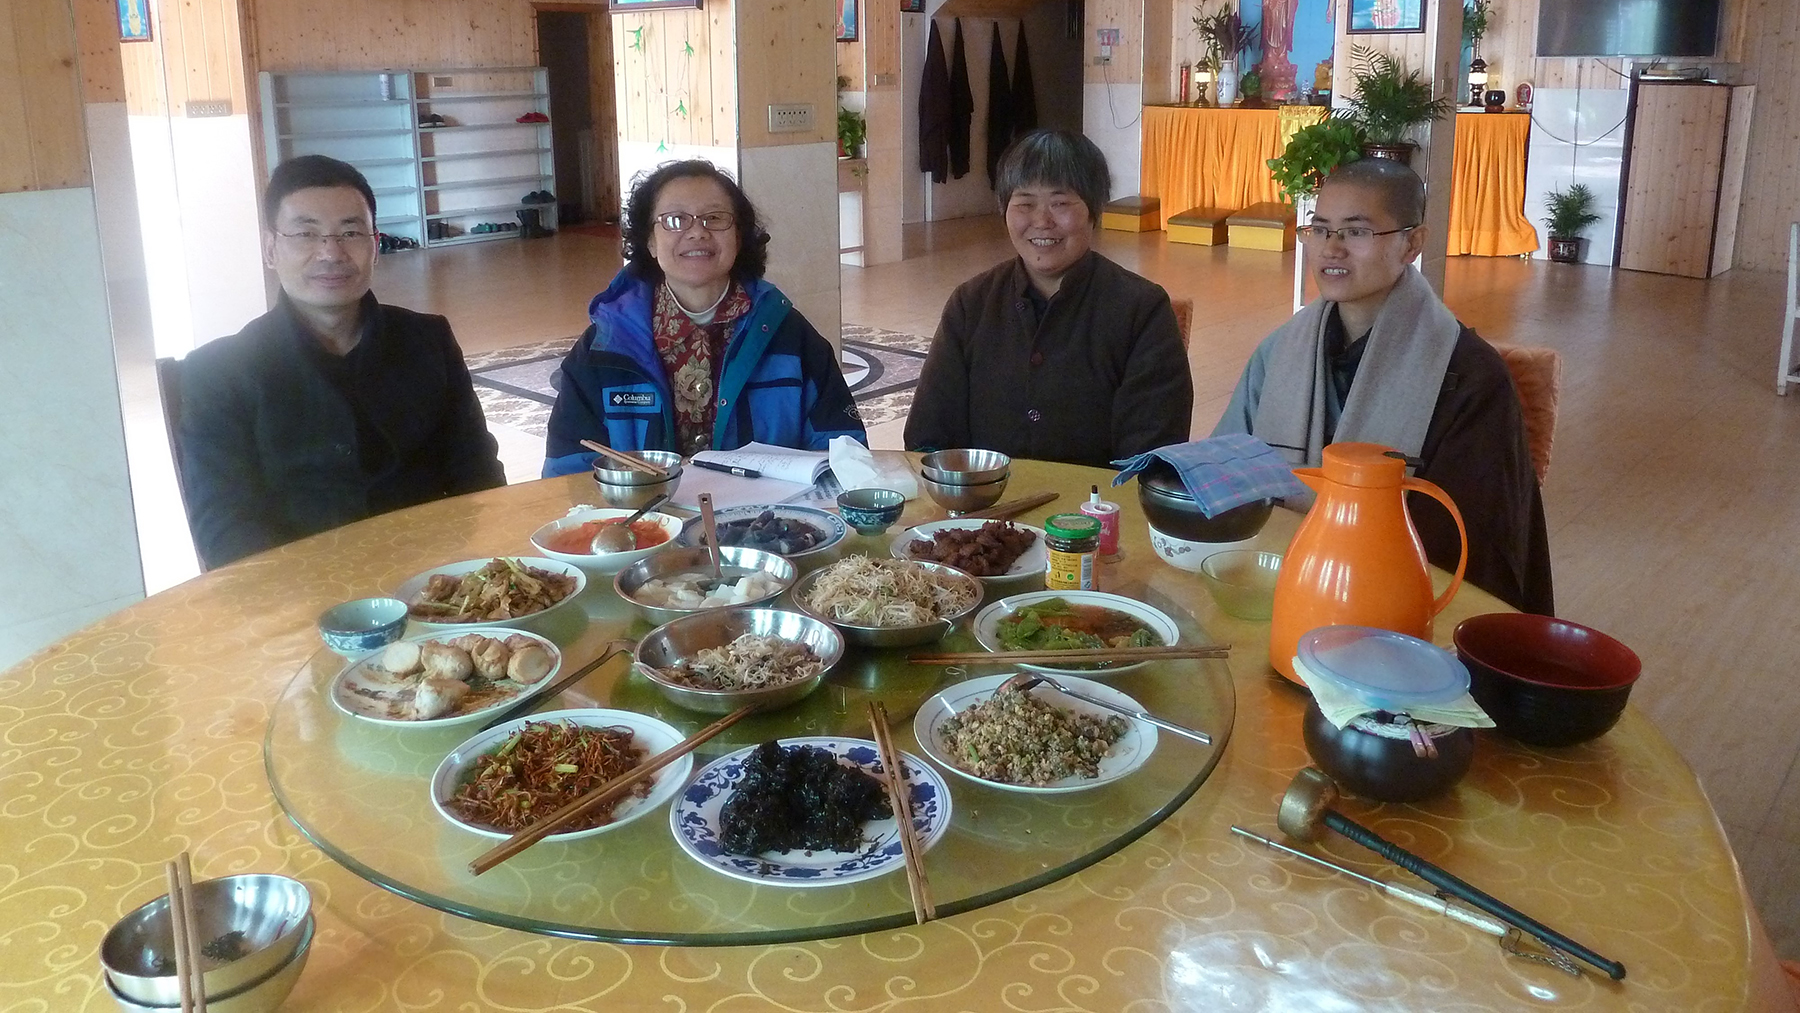 Professor Mayfair Yang, second from left, conducting anthropological research in Wenzhou. (Photo courtesy of Mayfair Yang)